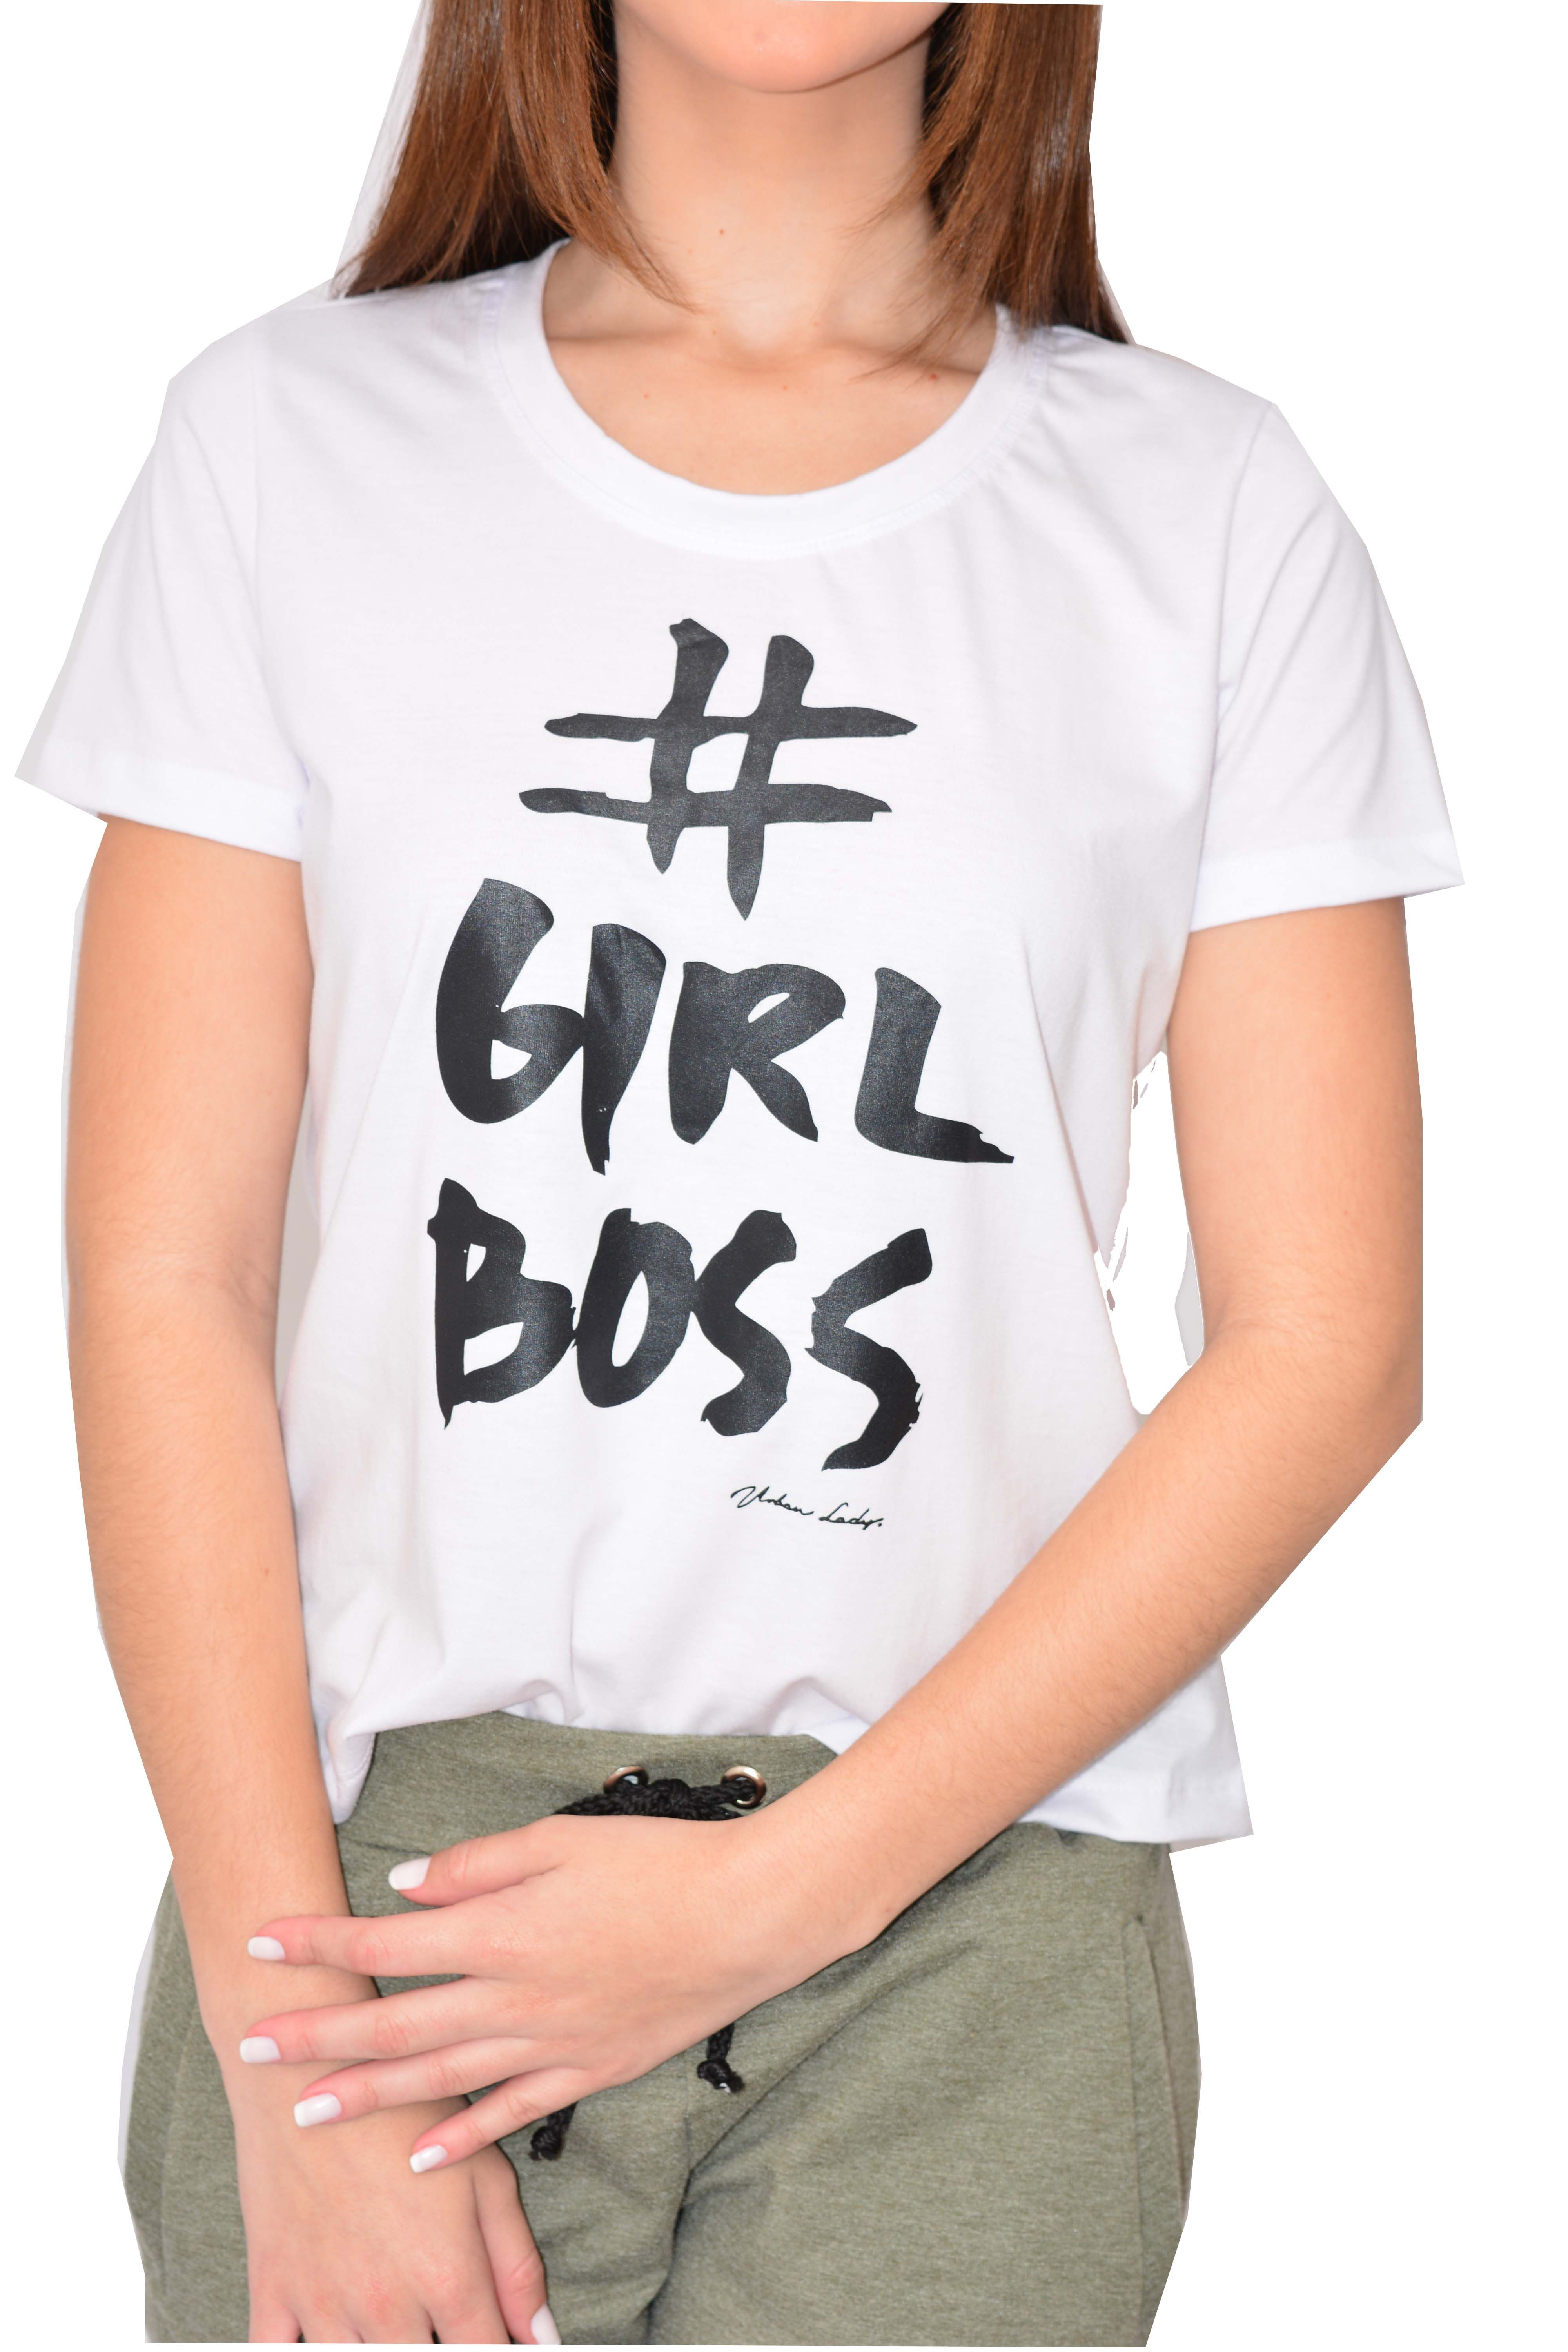 T-shirt Urban Lady Estampada Girl Boss